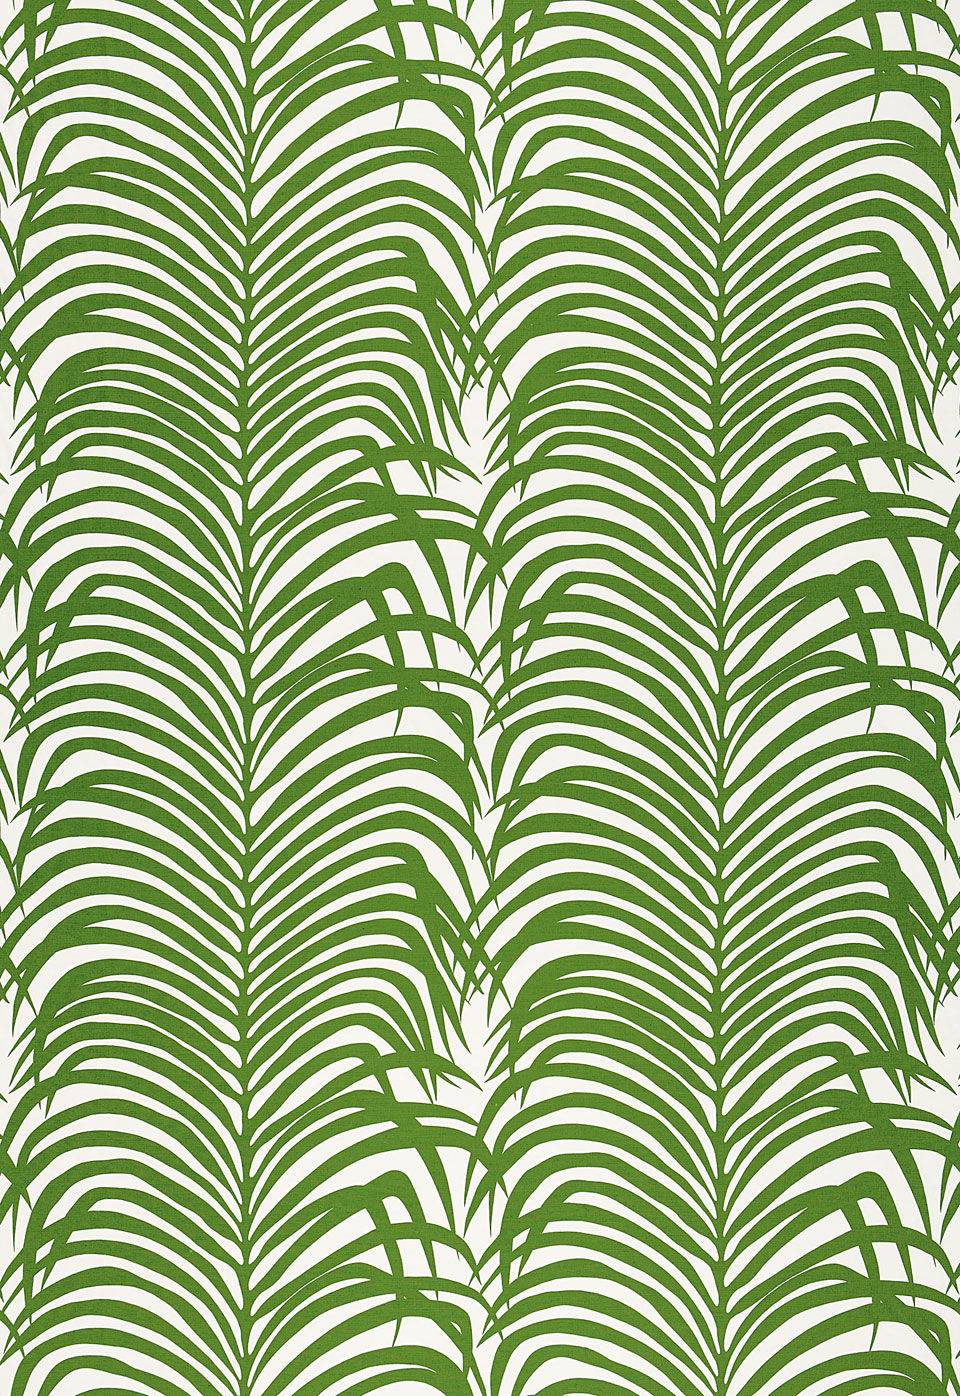 Safari Pattern Wallpaper photo - 1